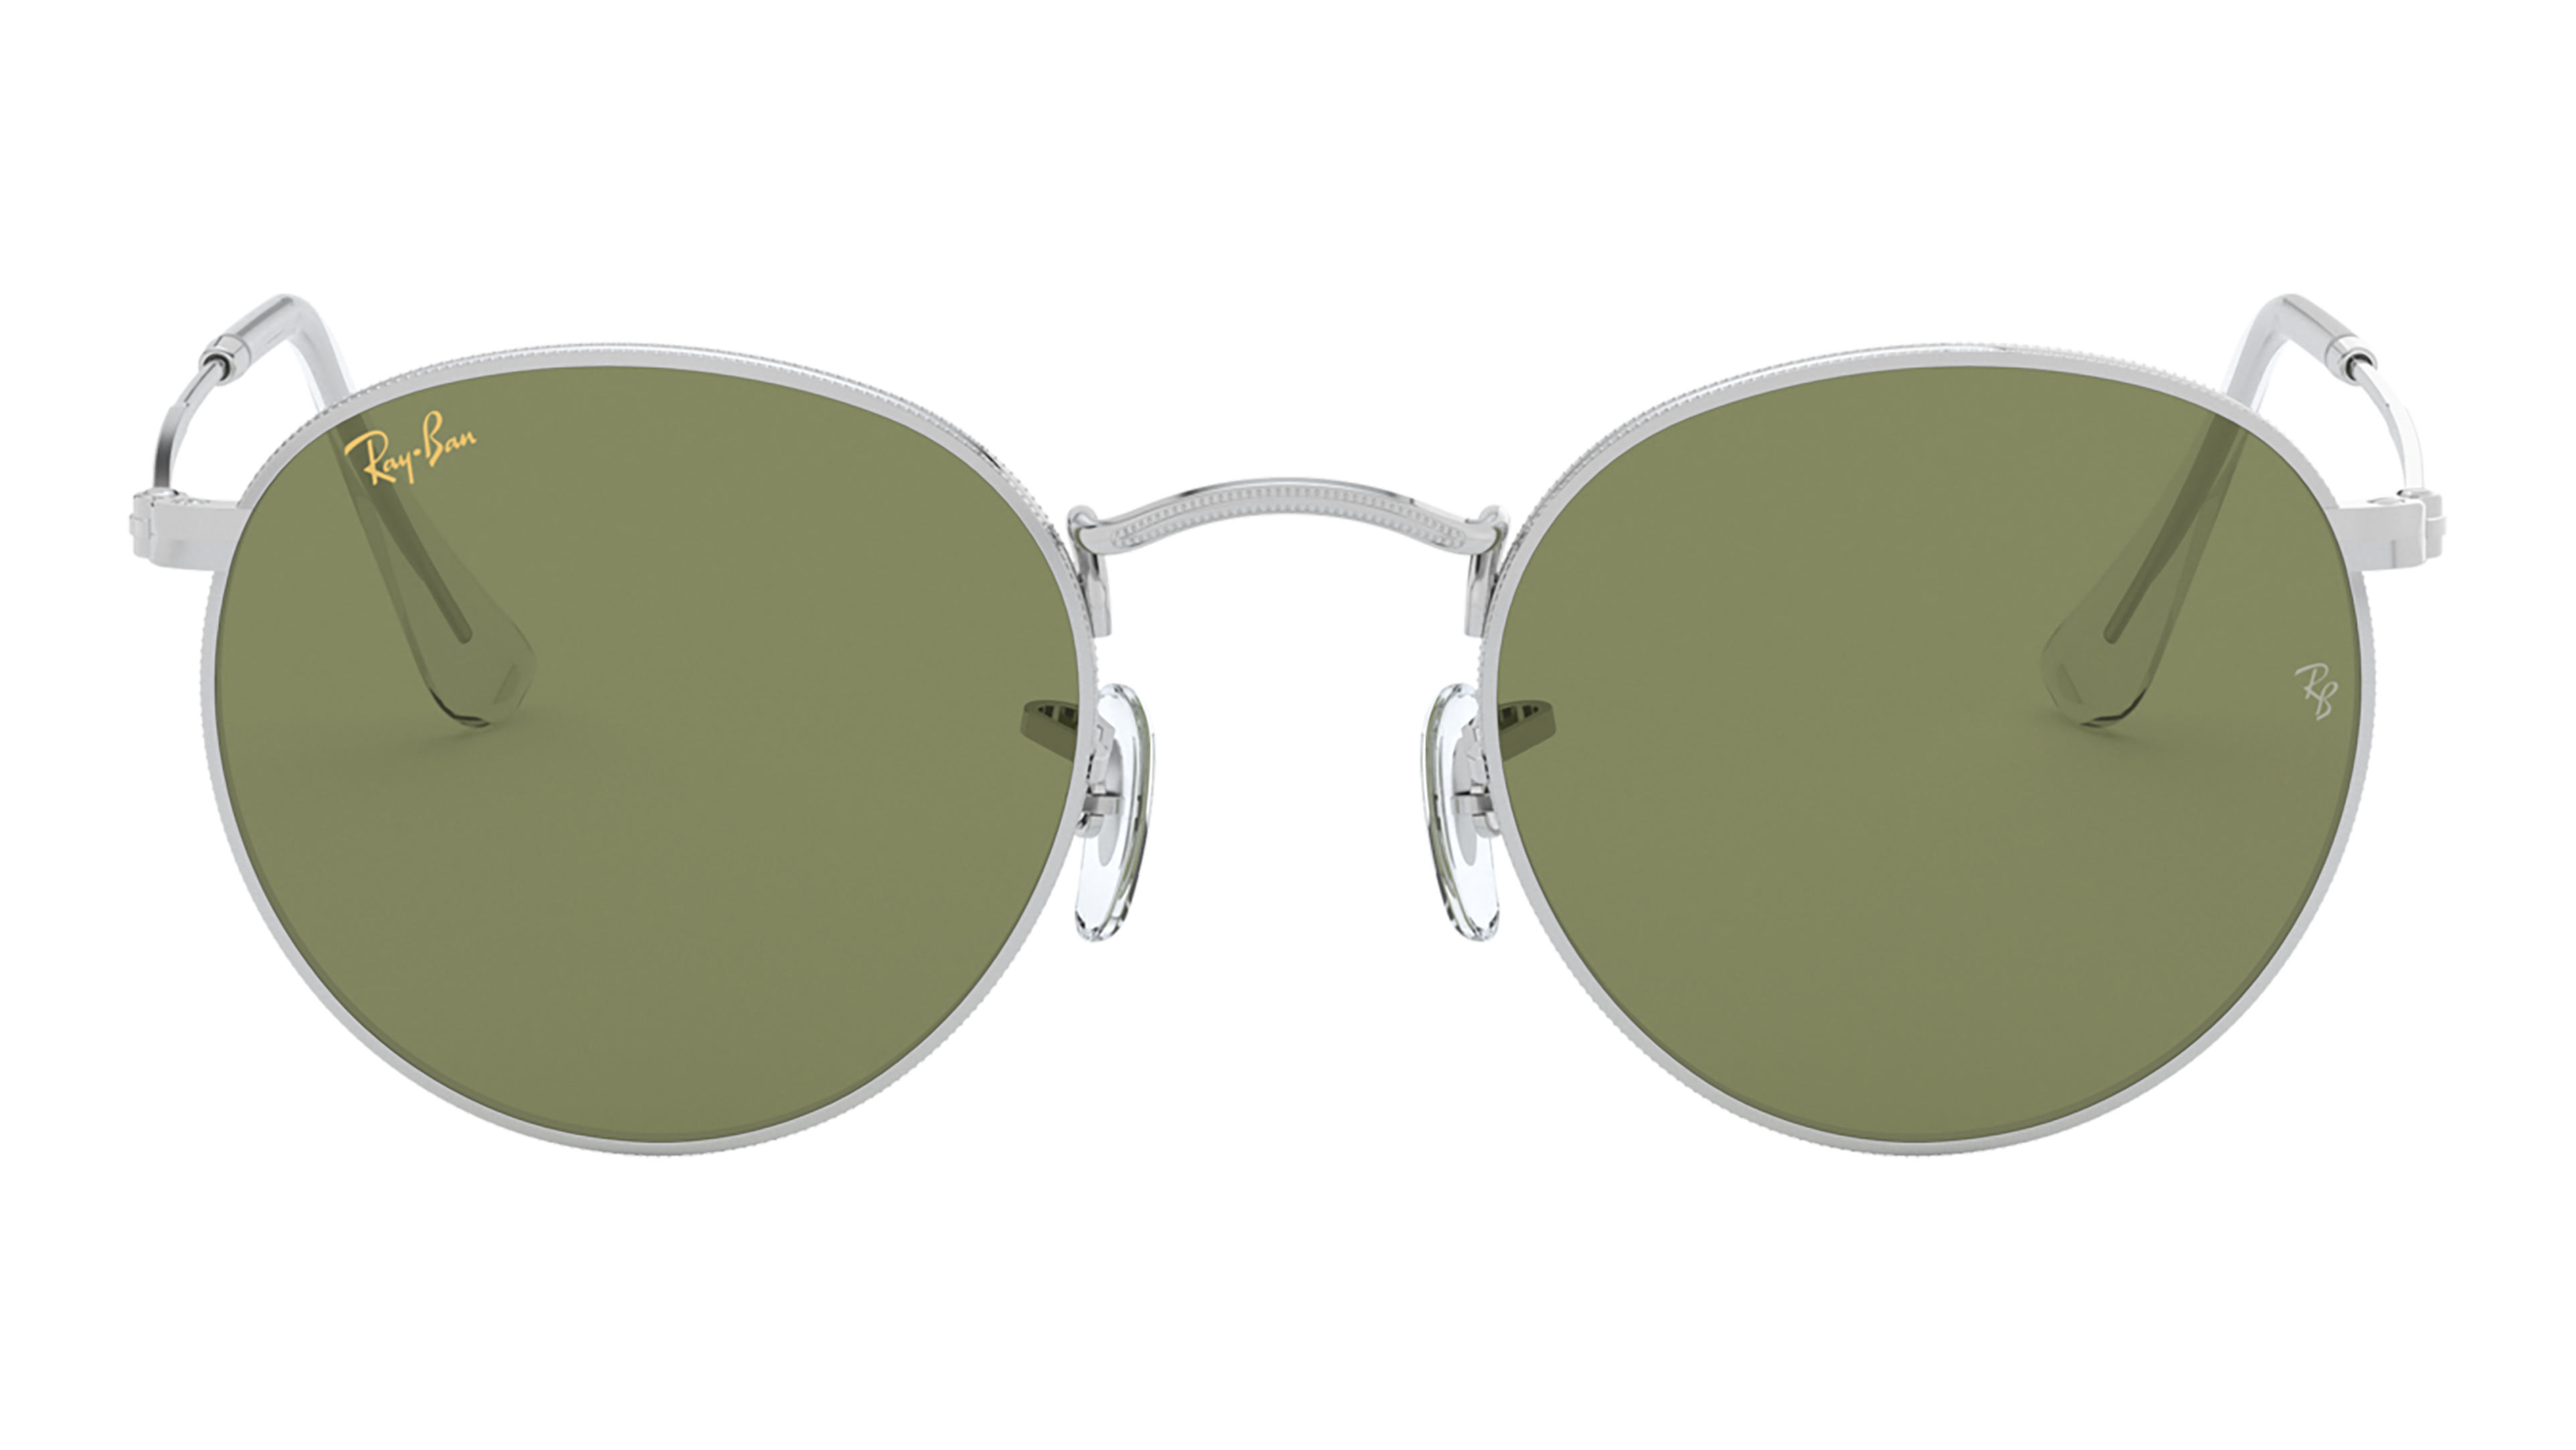 Front Ray-Ban Ray-Ban 0RB3447 91984E 53/21 Zilver/Groen